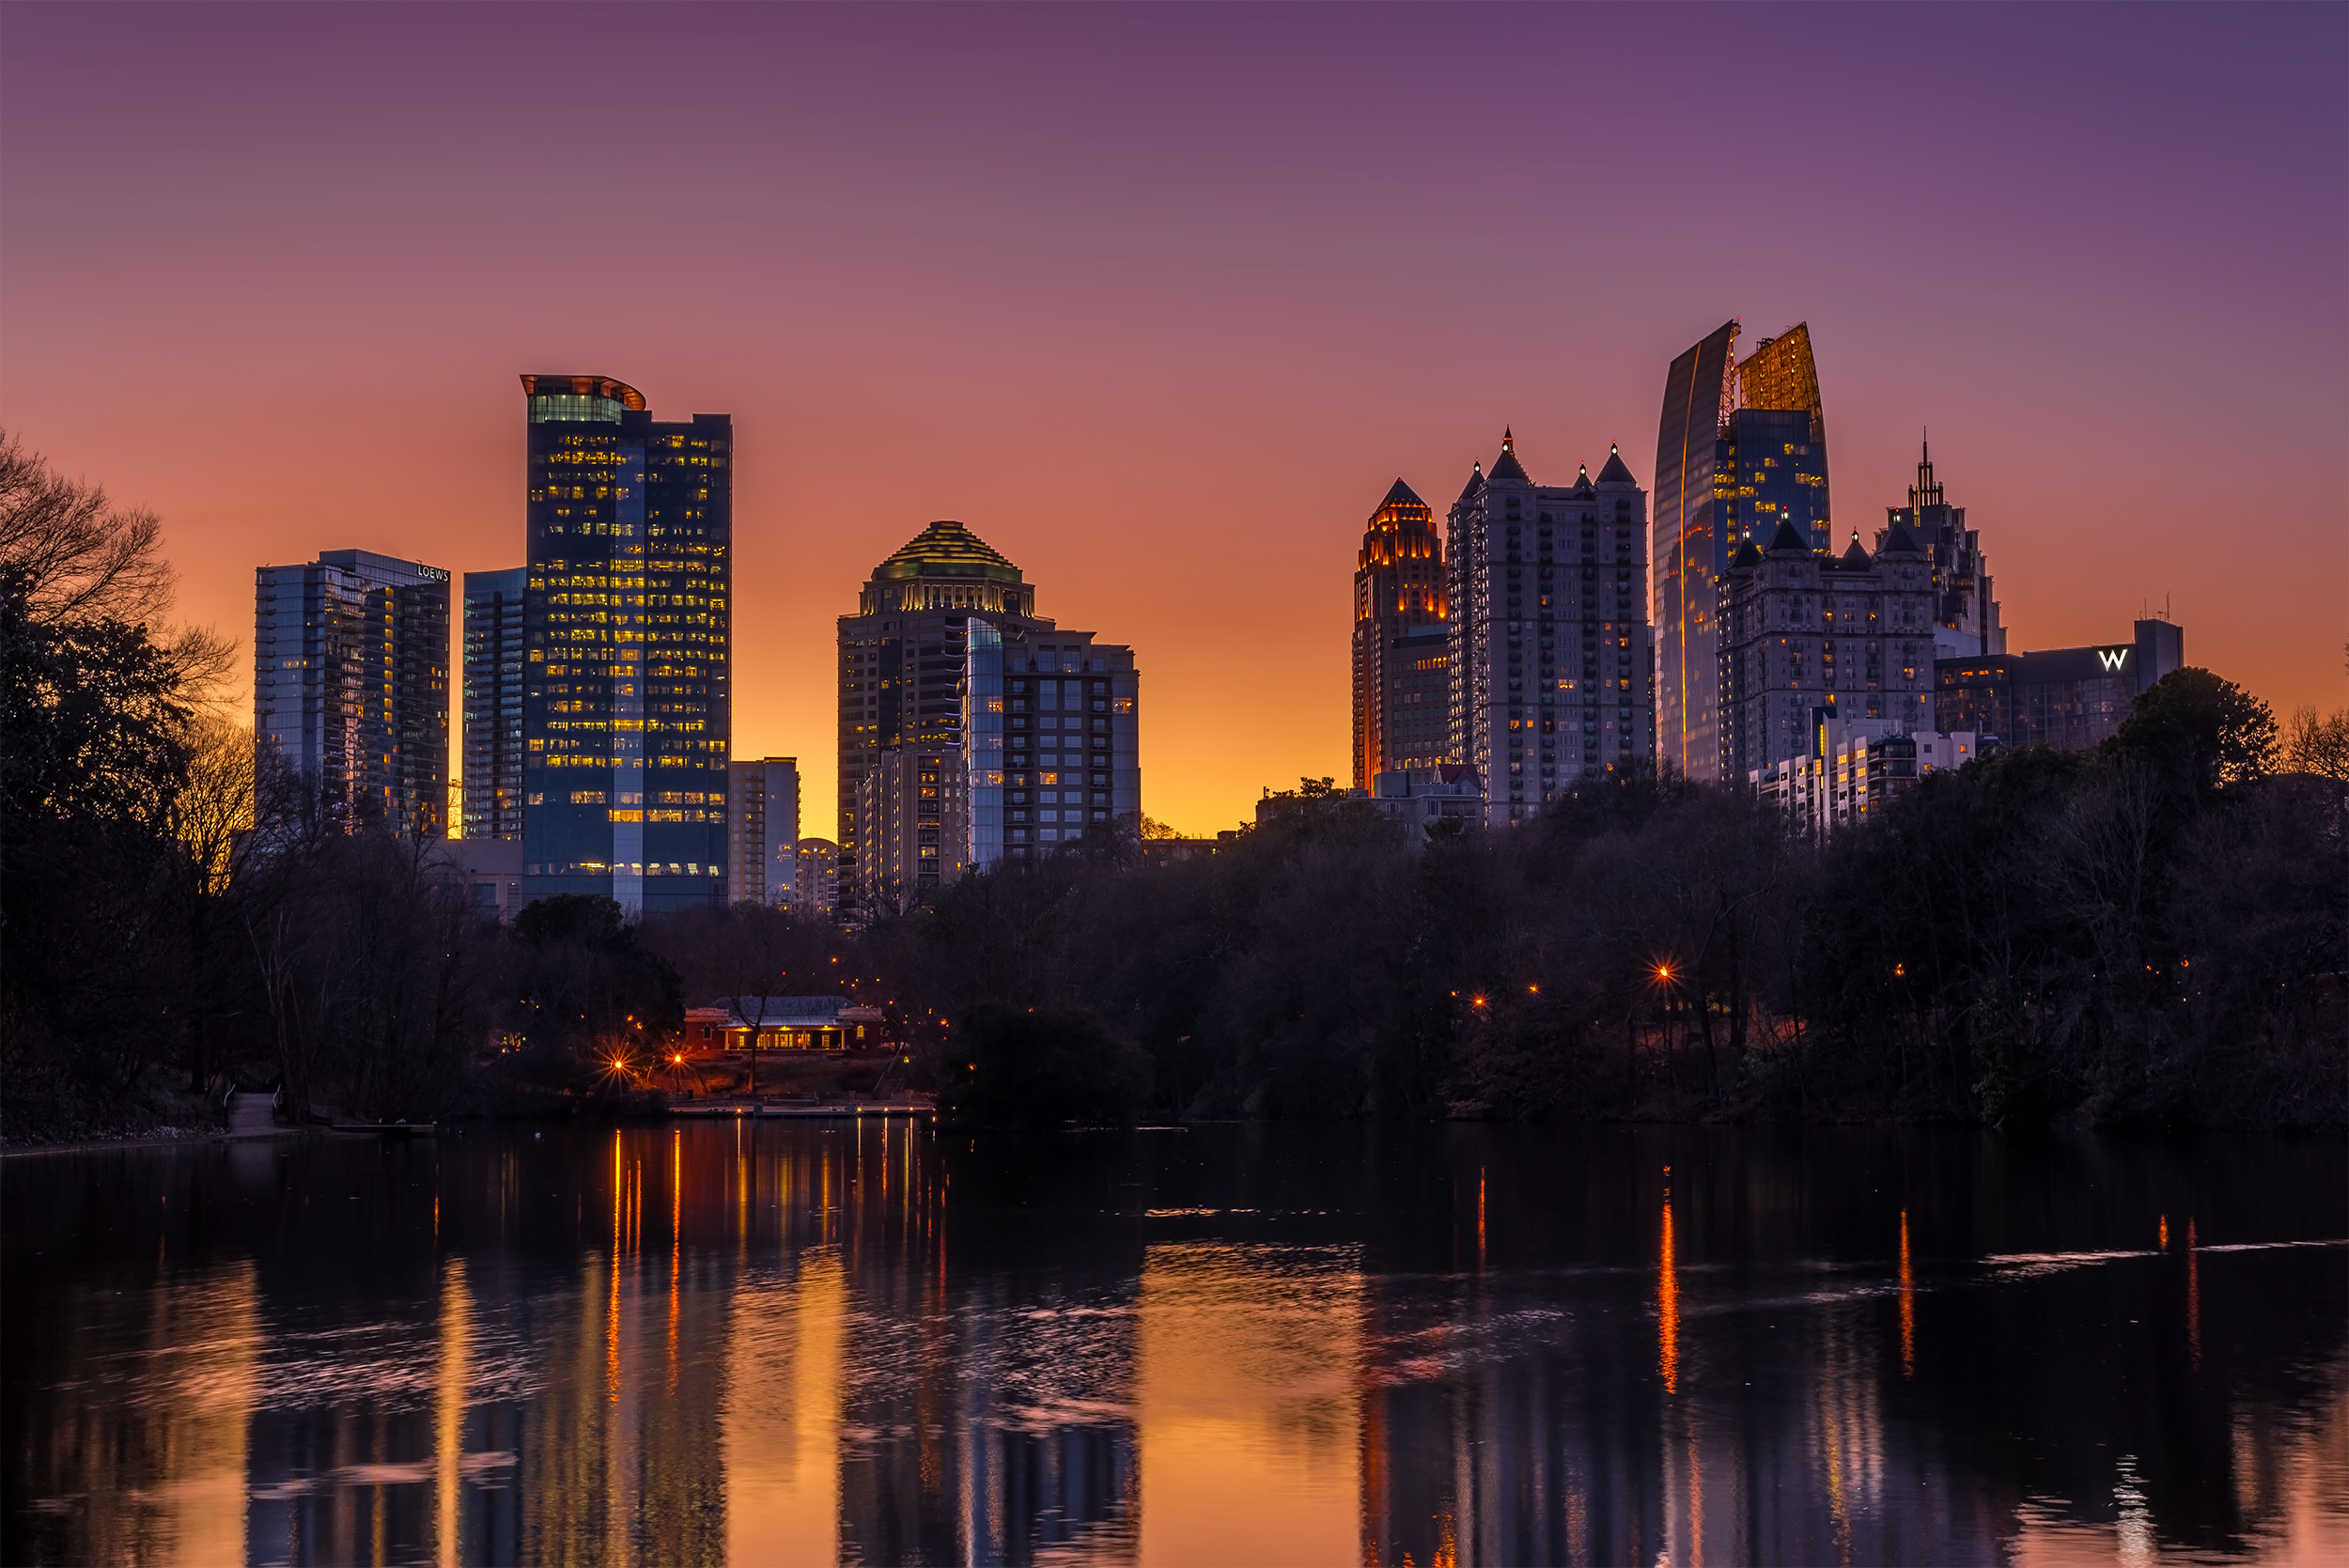 Piedmont Park, overlooking Lake Clara Meer and the Atlanta Midtown skyline at sunset.